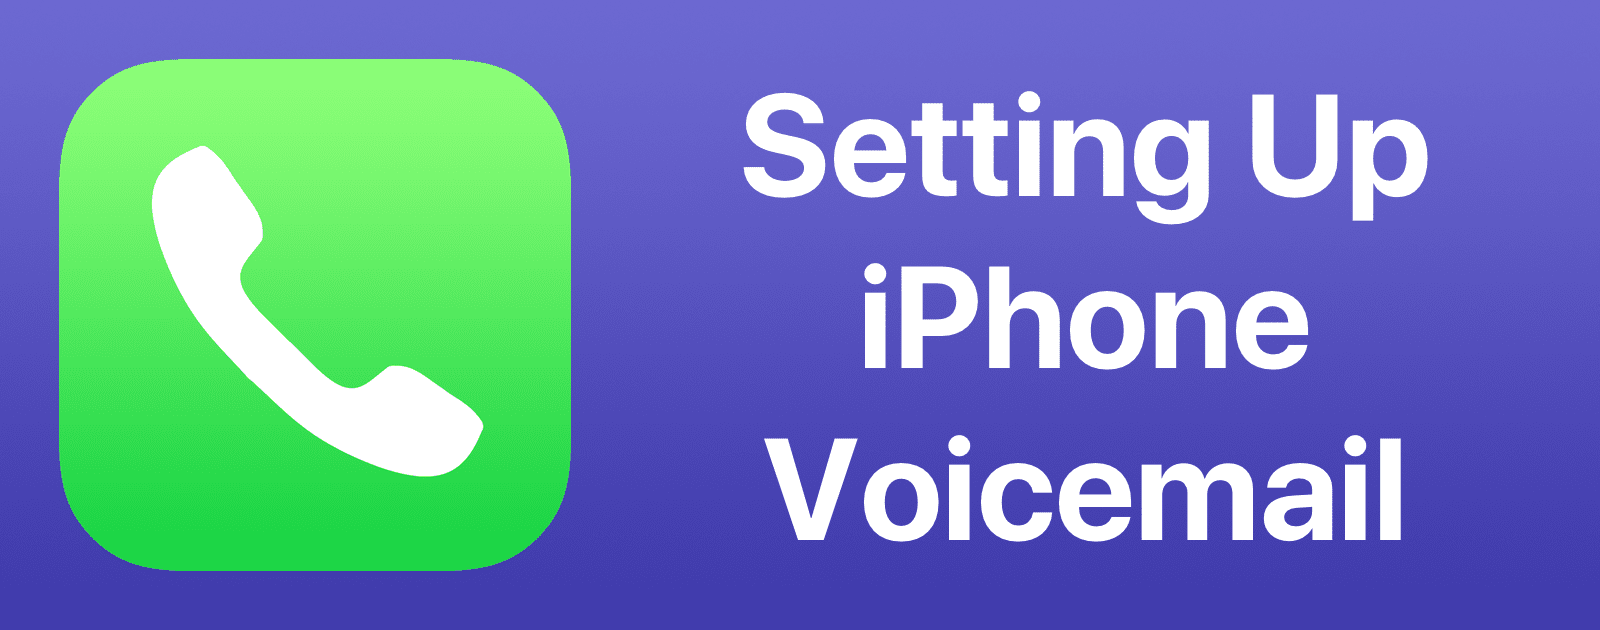 how to set up voicemail on my iphone